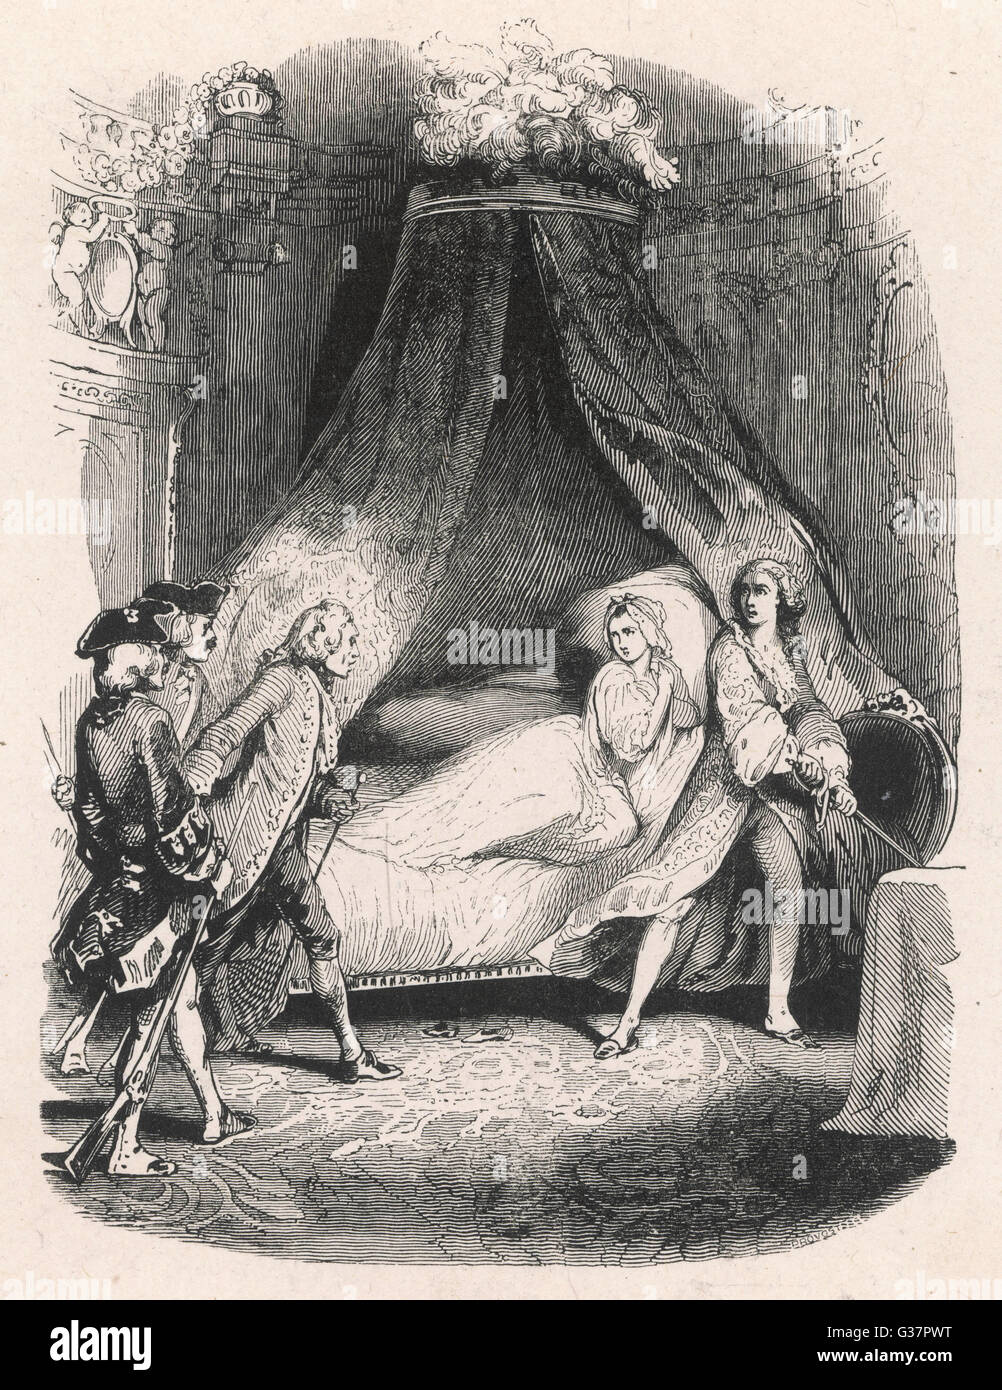 Manon & her lover confronted?          Date: First published: 1731 - Stock Image